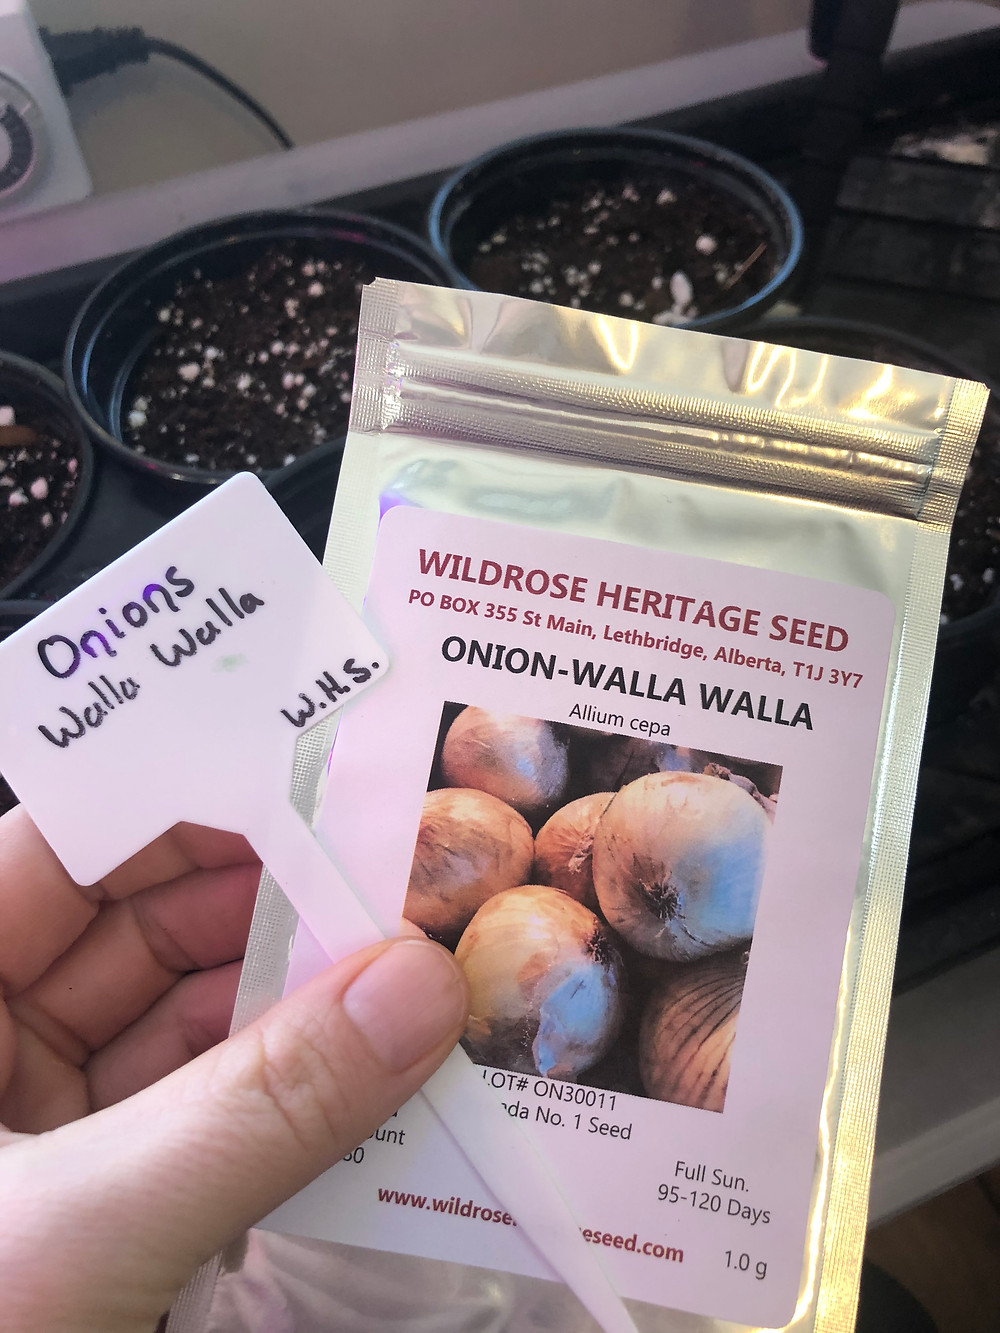 One option of where to buy vegetable seeds in Alberta, Canada is Wildrose Heritage Seed who carries many heirloom seeds.